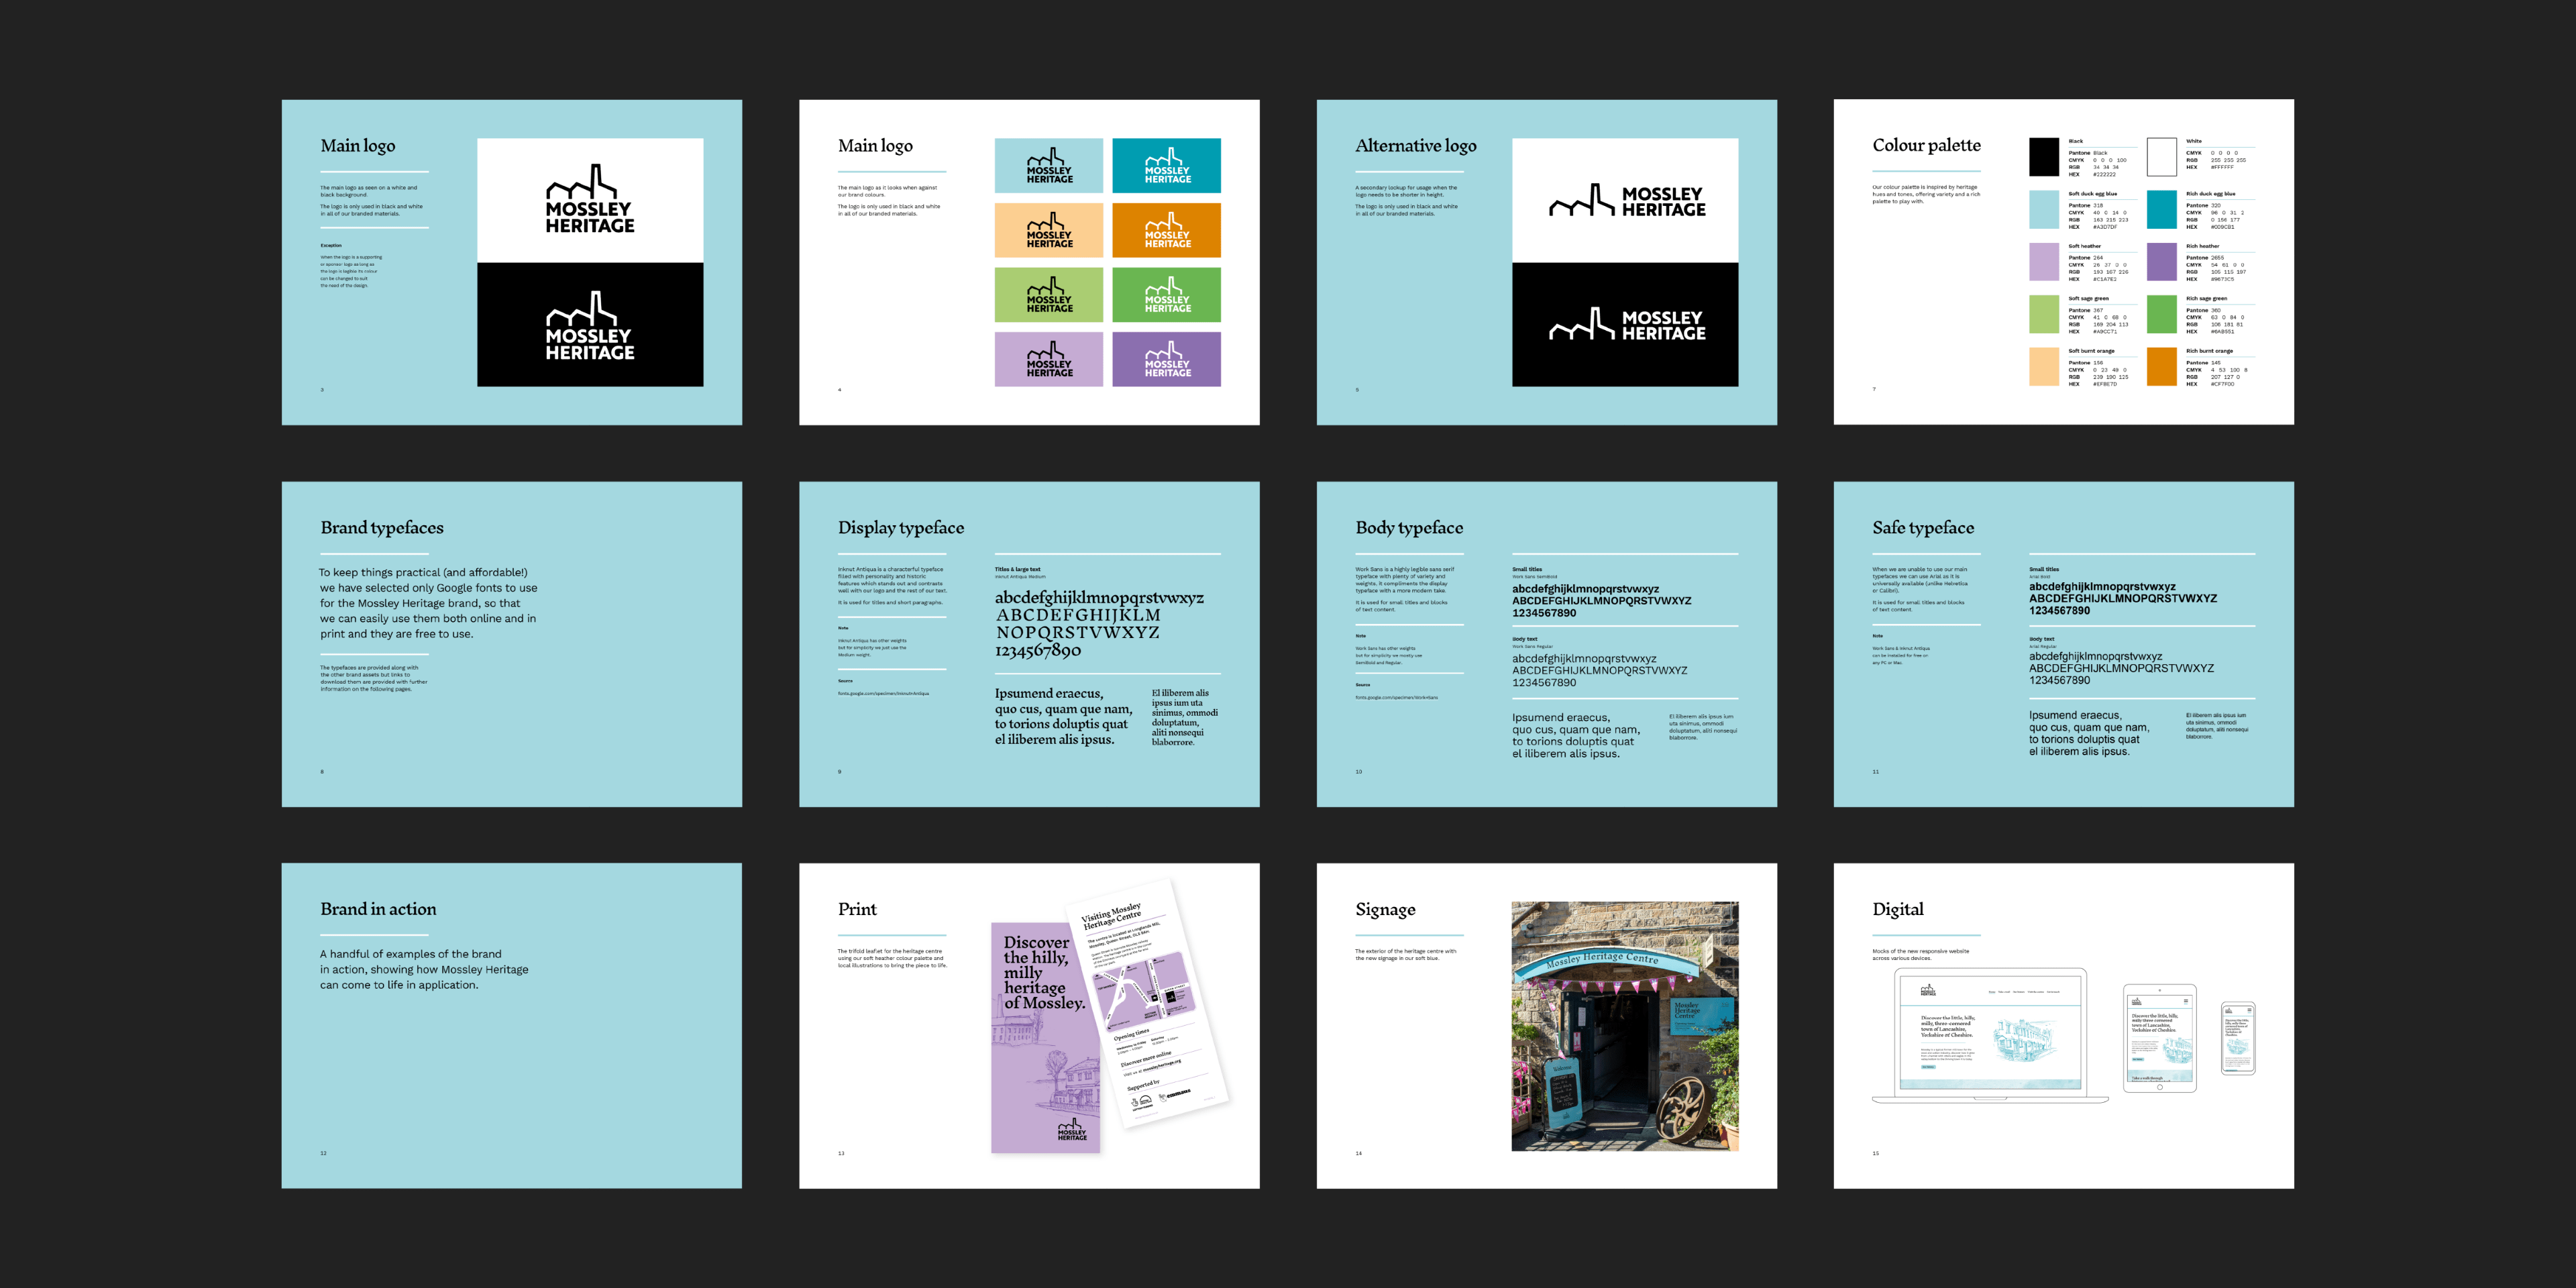 Sample of the brand guidelines for Mossley Heritage showing the variety and ways it can be used.